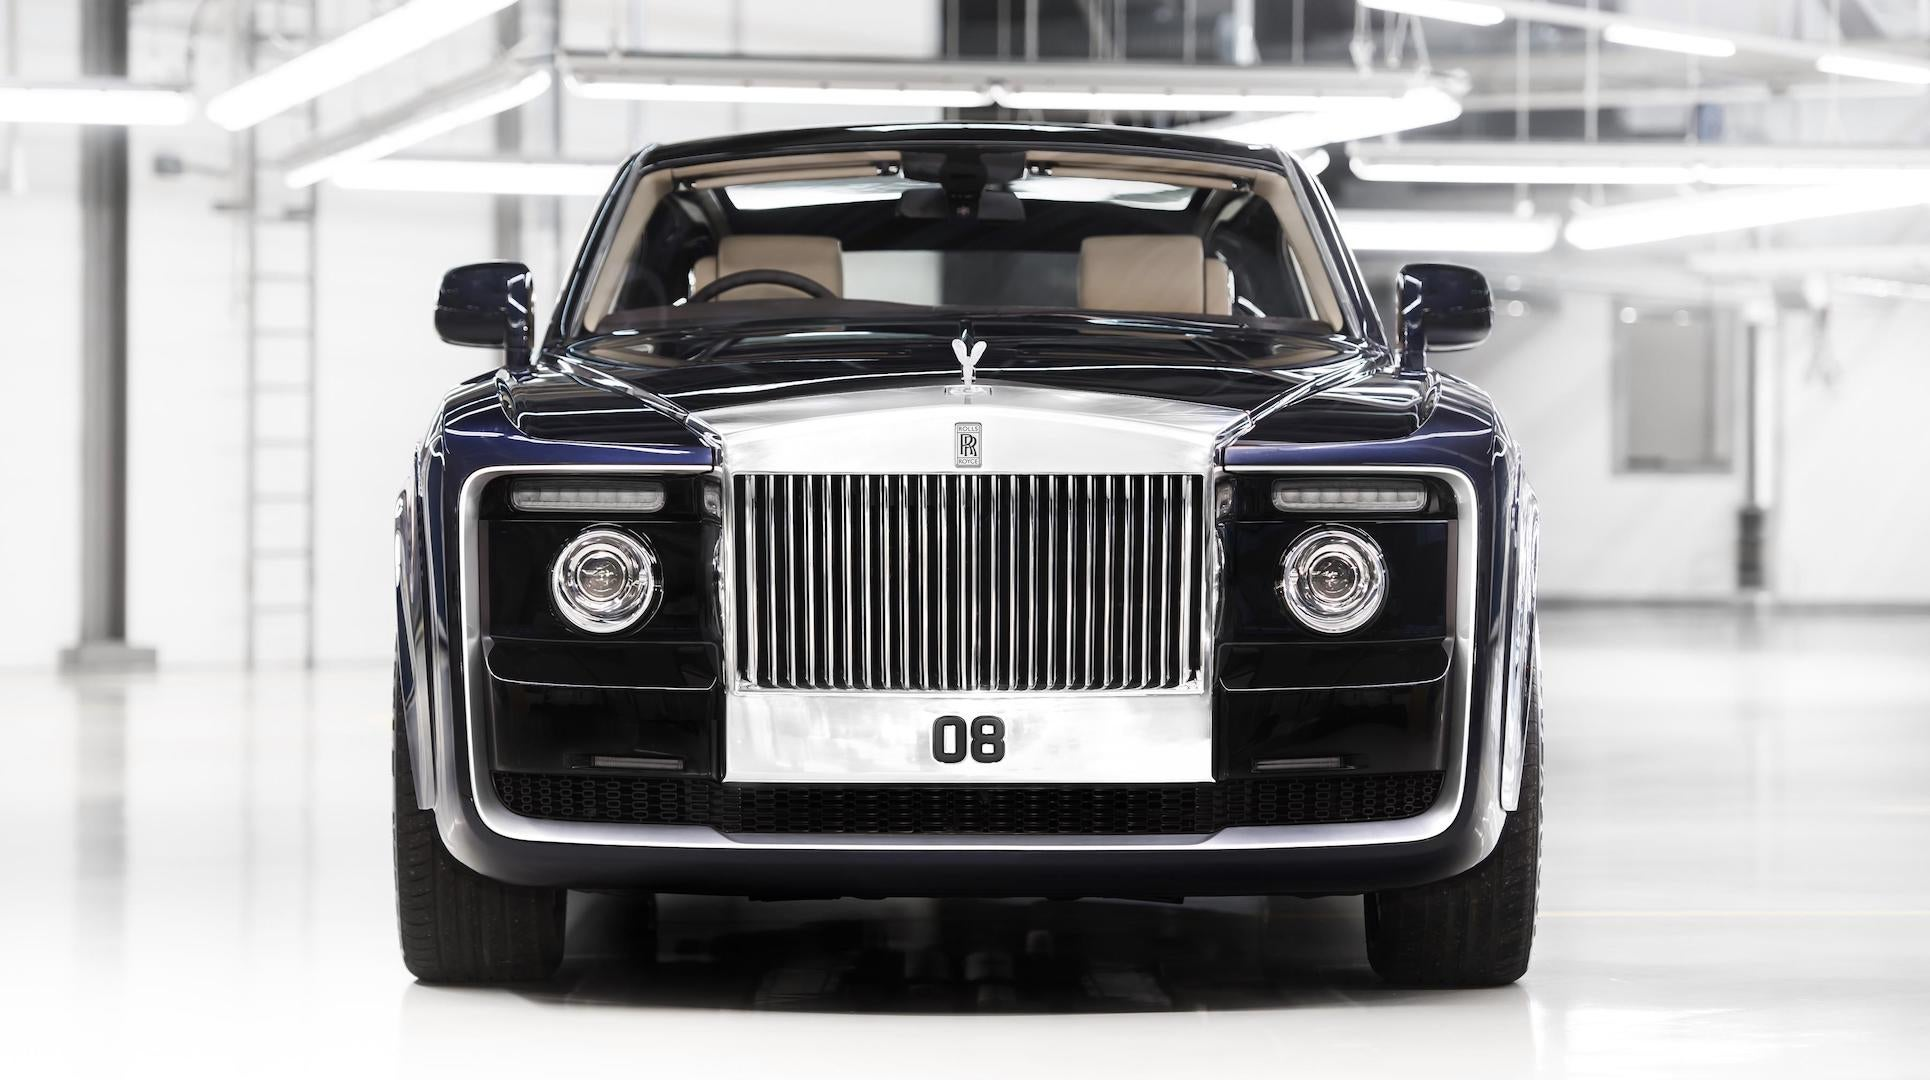 This Oddball Rolls Royce Could Be The Most Expensive New Car Ever